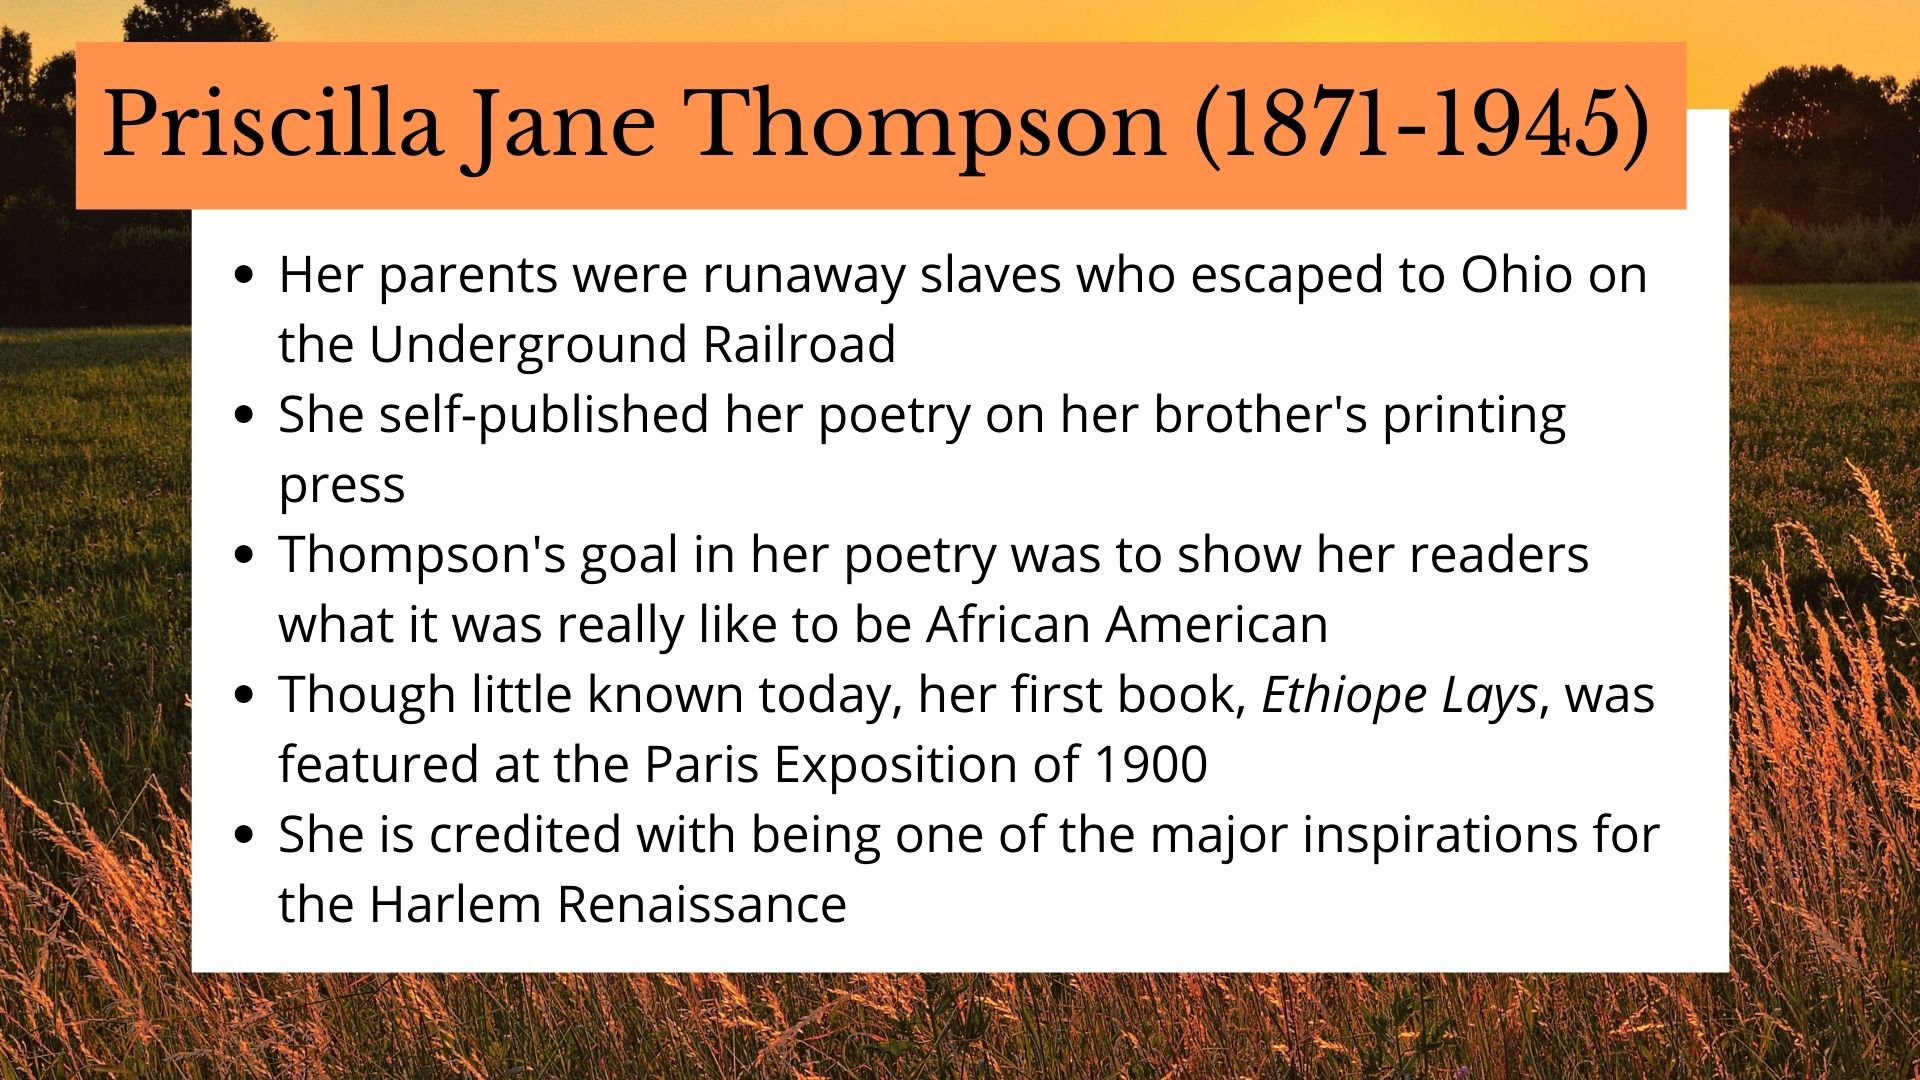 Priscilla Jane Thompson (1871-1945) Her parents were runaway slaves who escaped to Ohio on the Underground Railroad She self-published her poetry on her brother's printing press Thompson's goal in her poetry was to show her readers what it was really like to be African American Though little known today, her first book, Ethiope Lays, was featured at the Paris Exposition of 1900 She is credited with being one of the major inspirations for the Harlem Renaissance